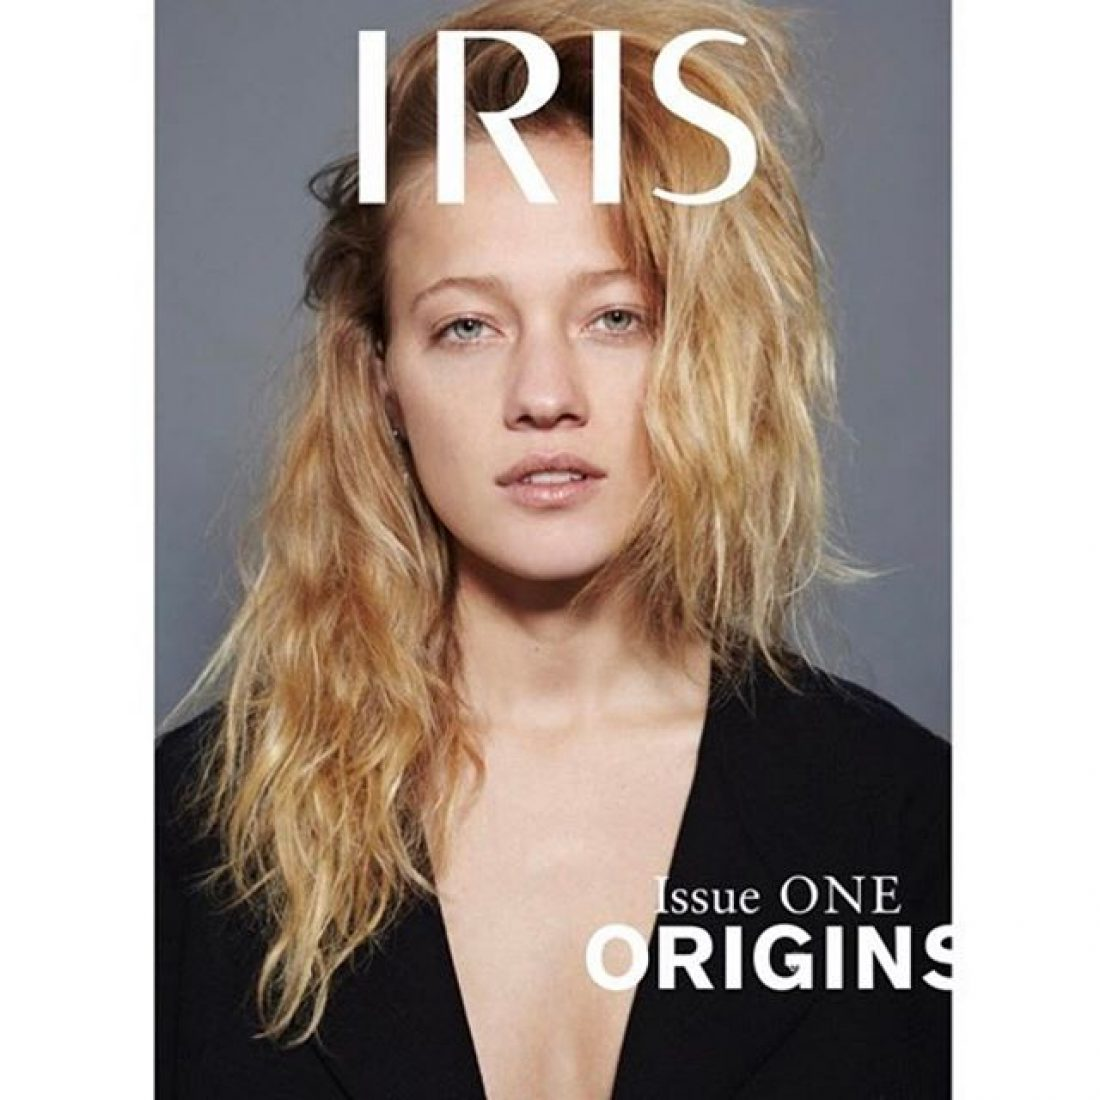 Zippora photographed for the cover of IRIS MAGAZINE by @amandaaustinphotography @company1agency Mua: @clairethomsonmakeup  @emilysueyee